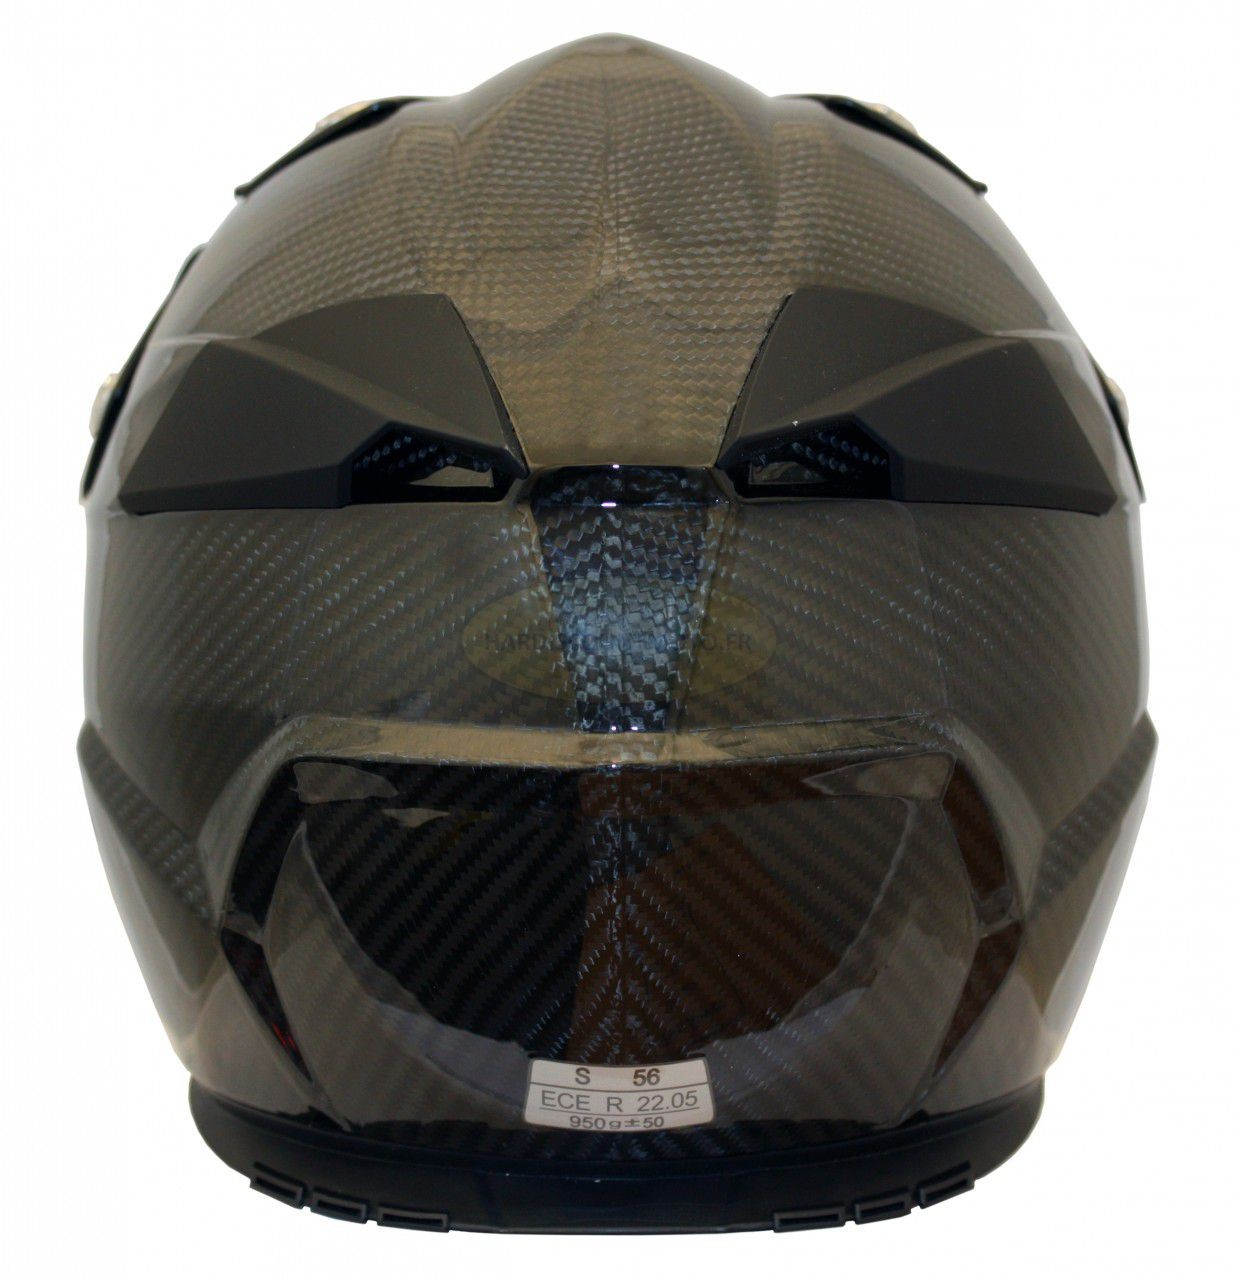 Casque Moto Cross S810 Carbone - Image 3